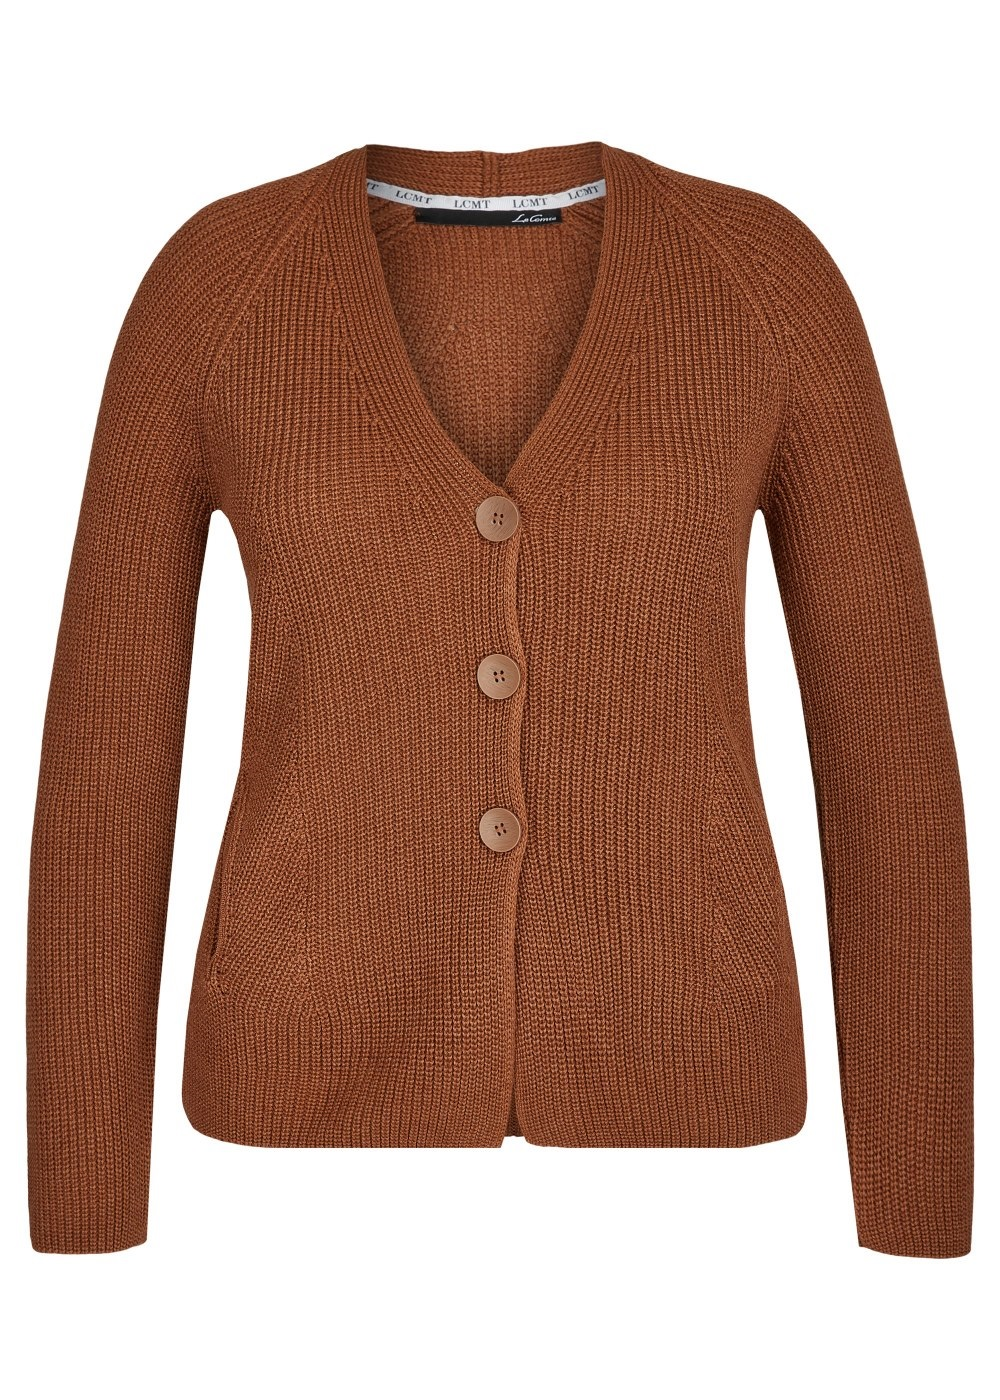 cardigan (camel colour)